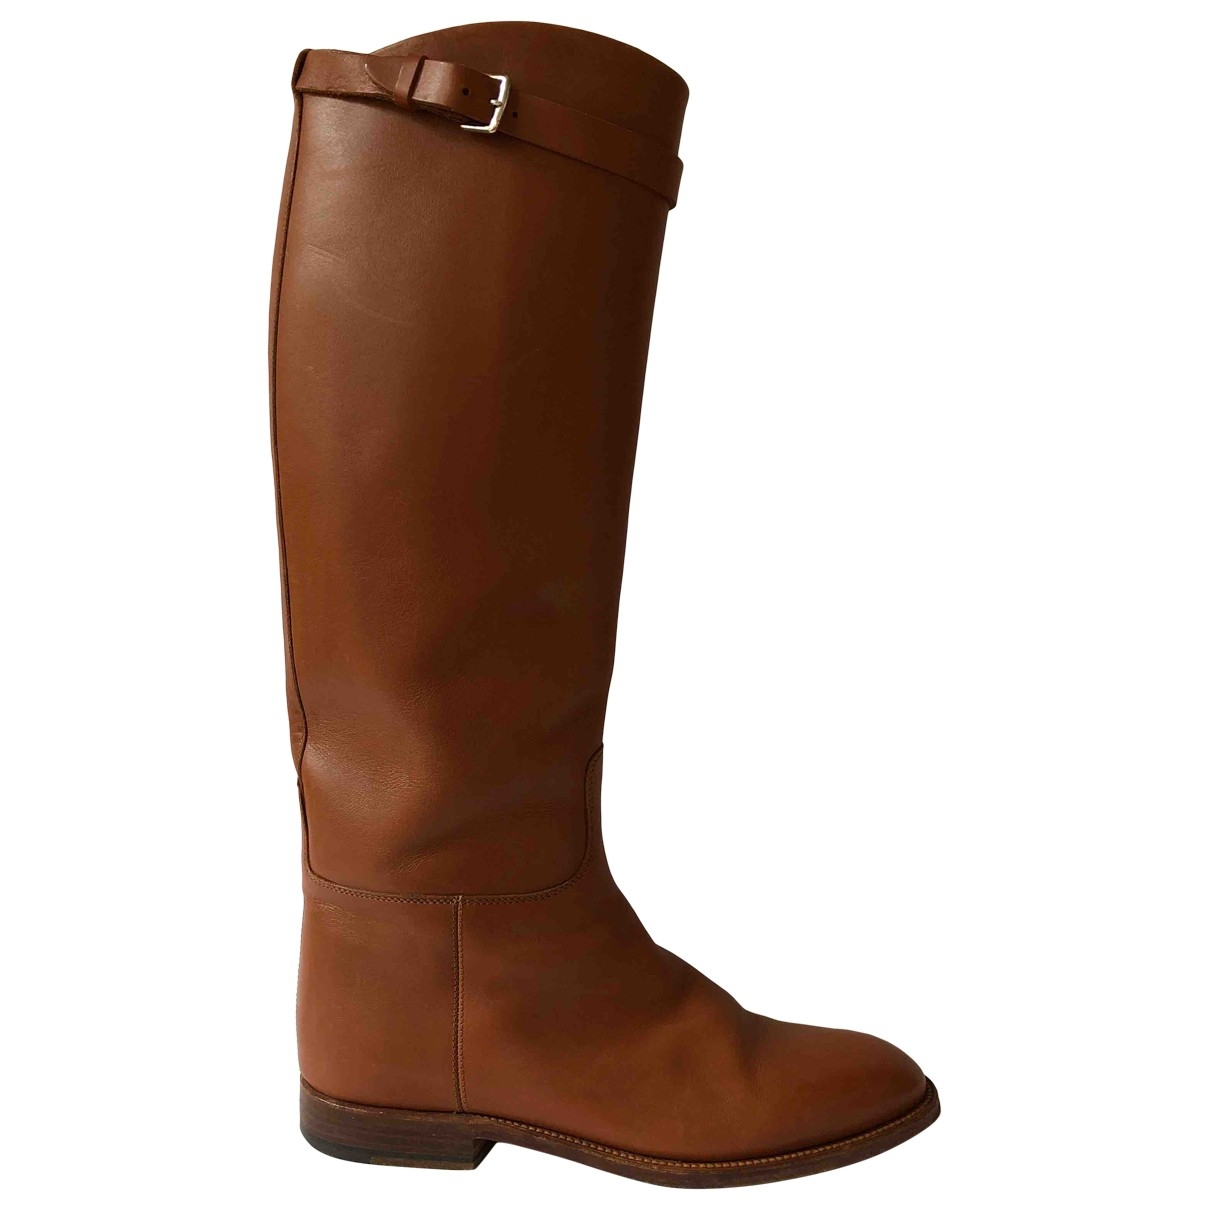 Hermès Jumping Beige Leather Boots for Women 38.5 EU